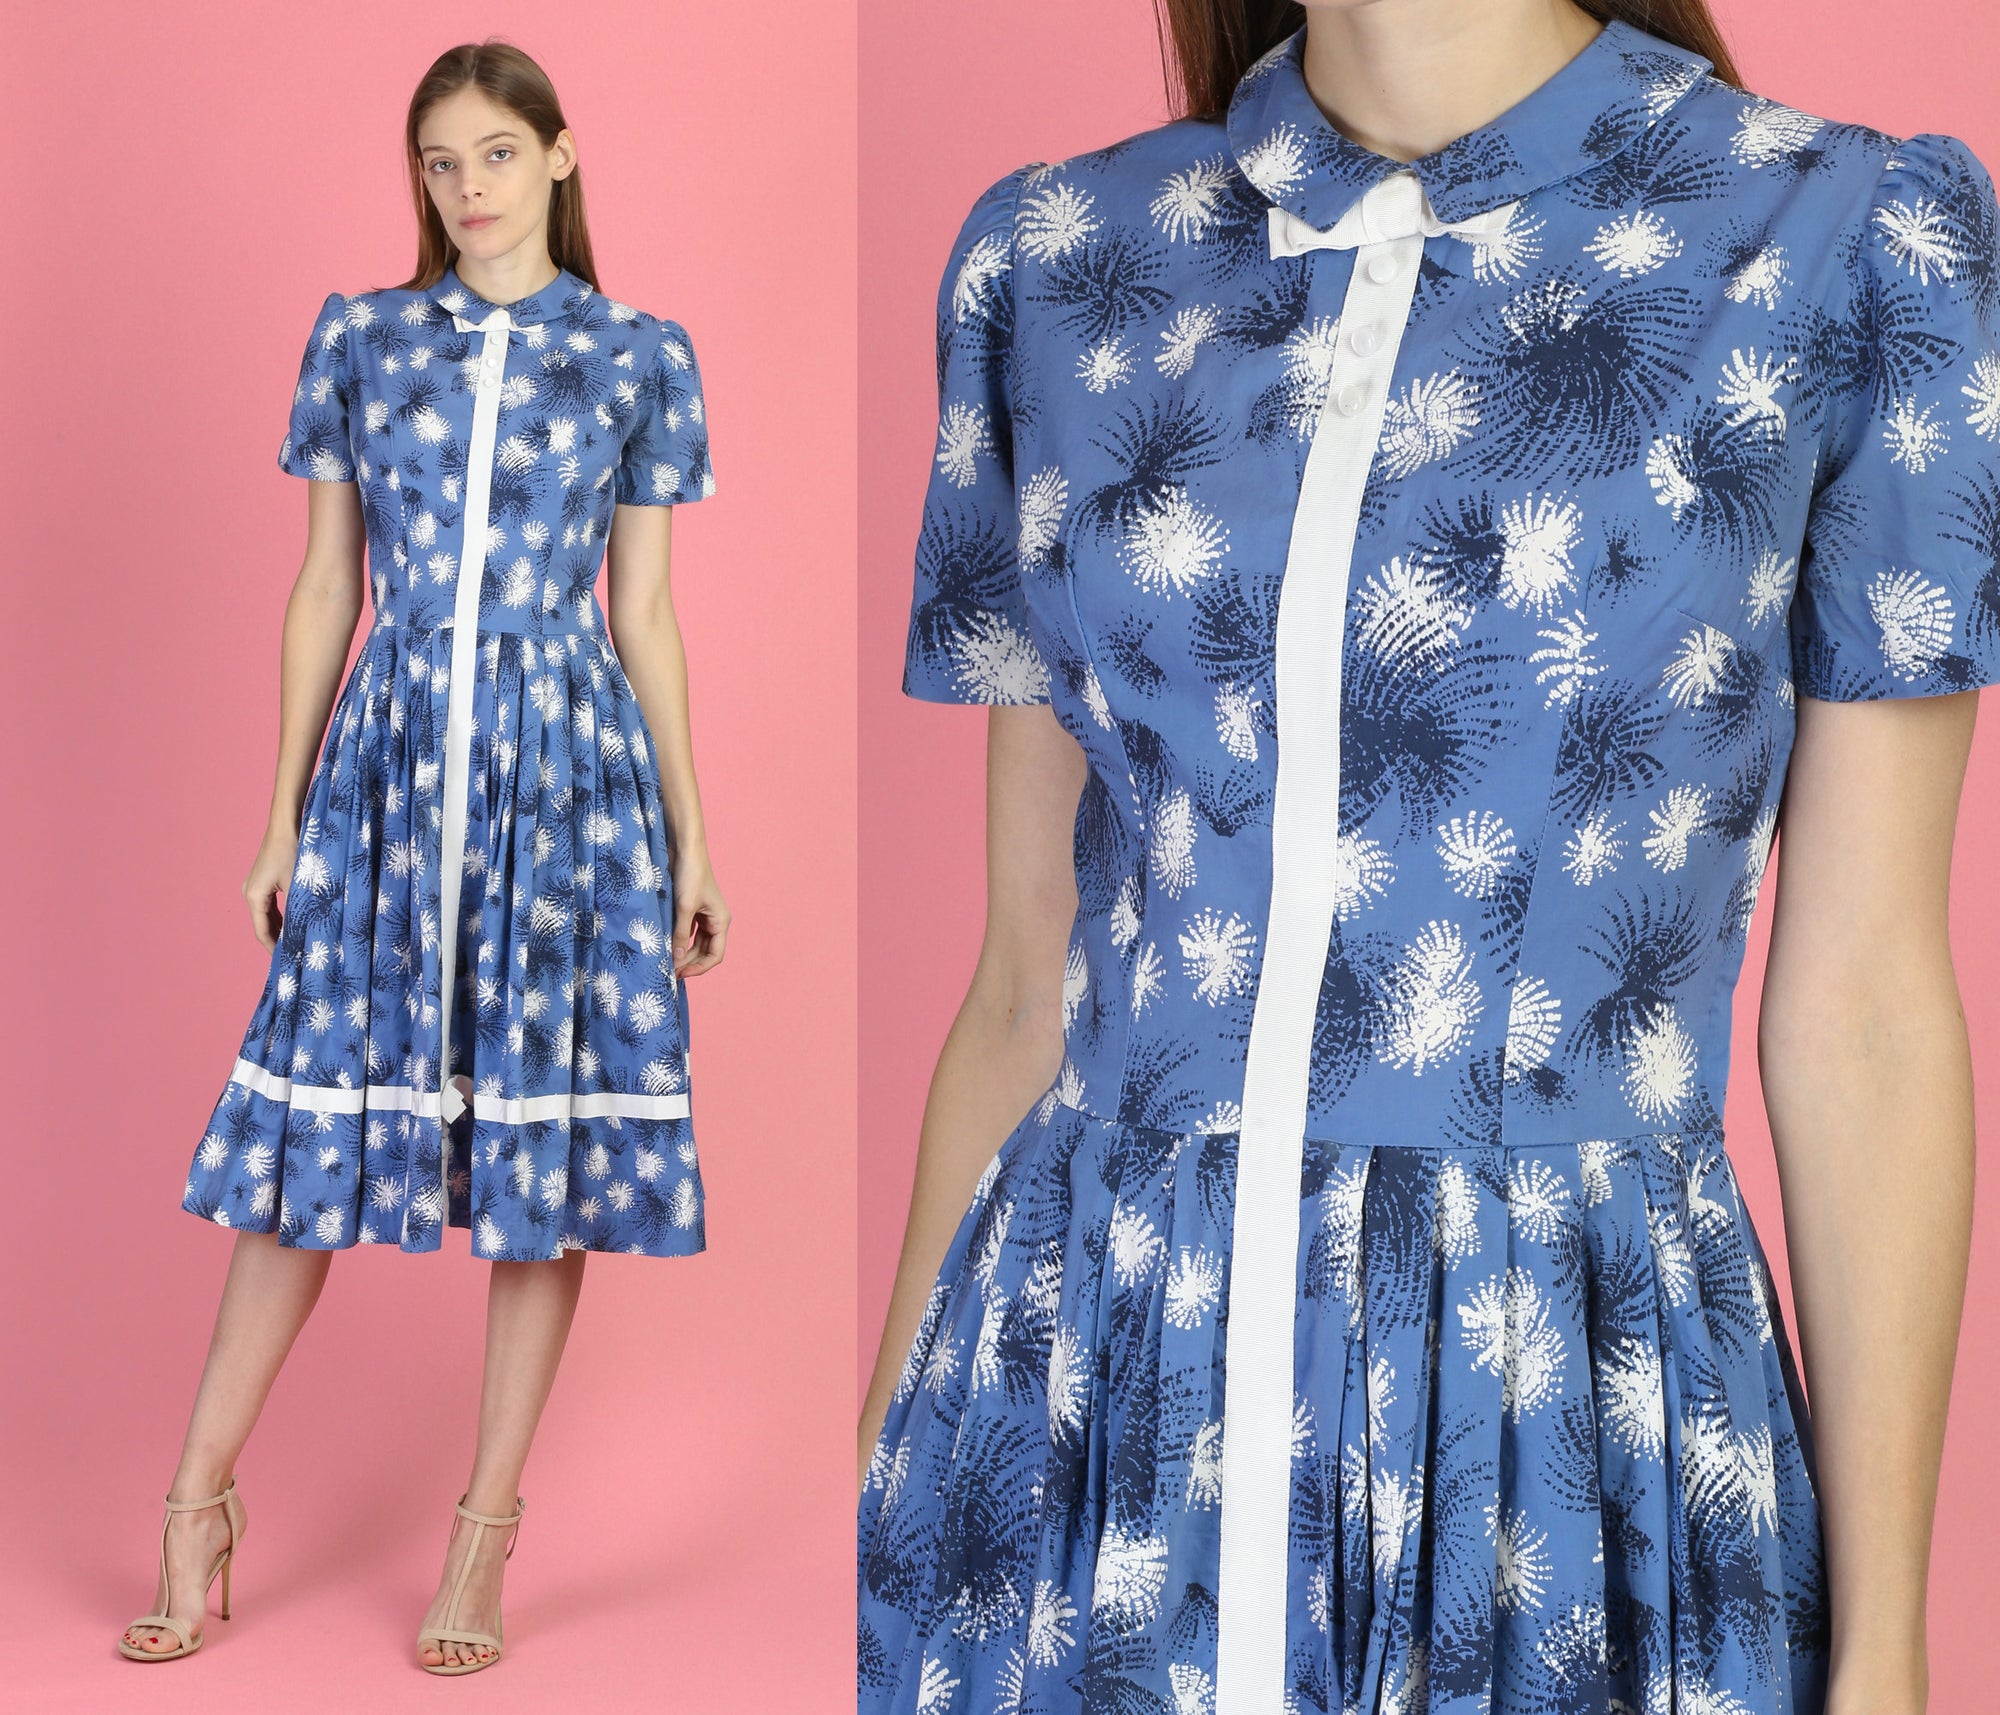 Vintage 1940s Blue Fit & Flare Tea Length Dress - Small